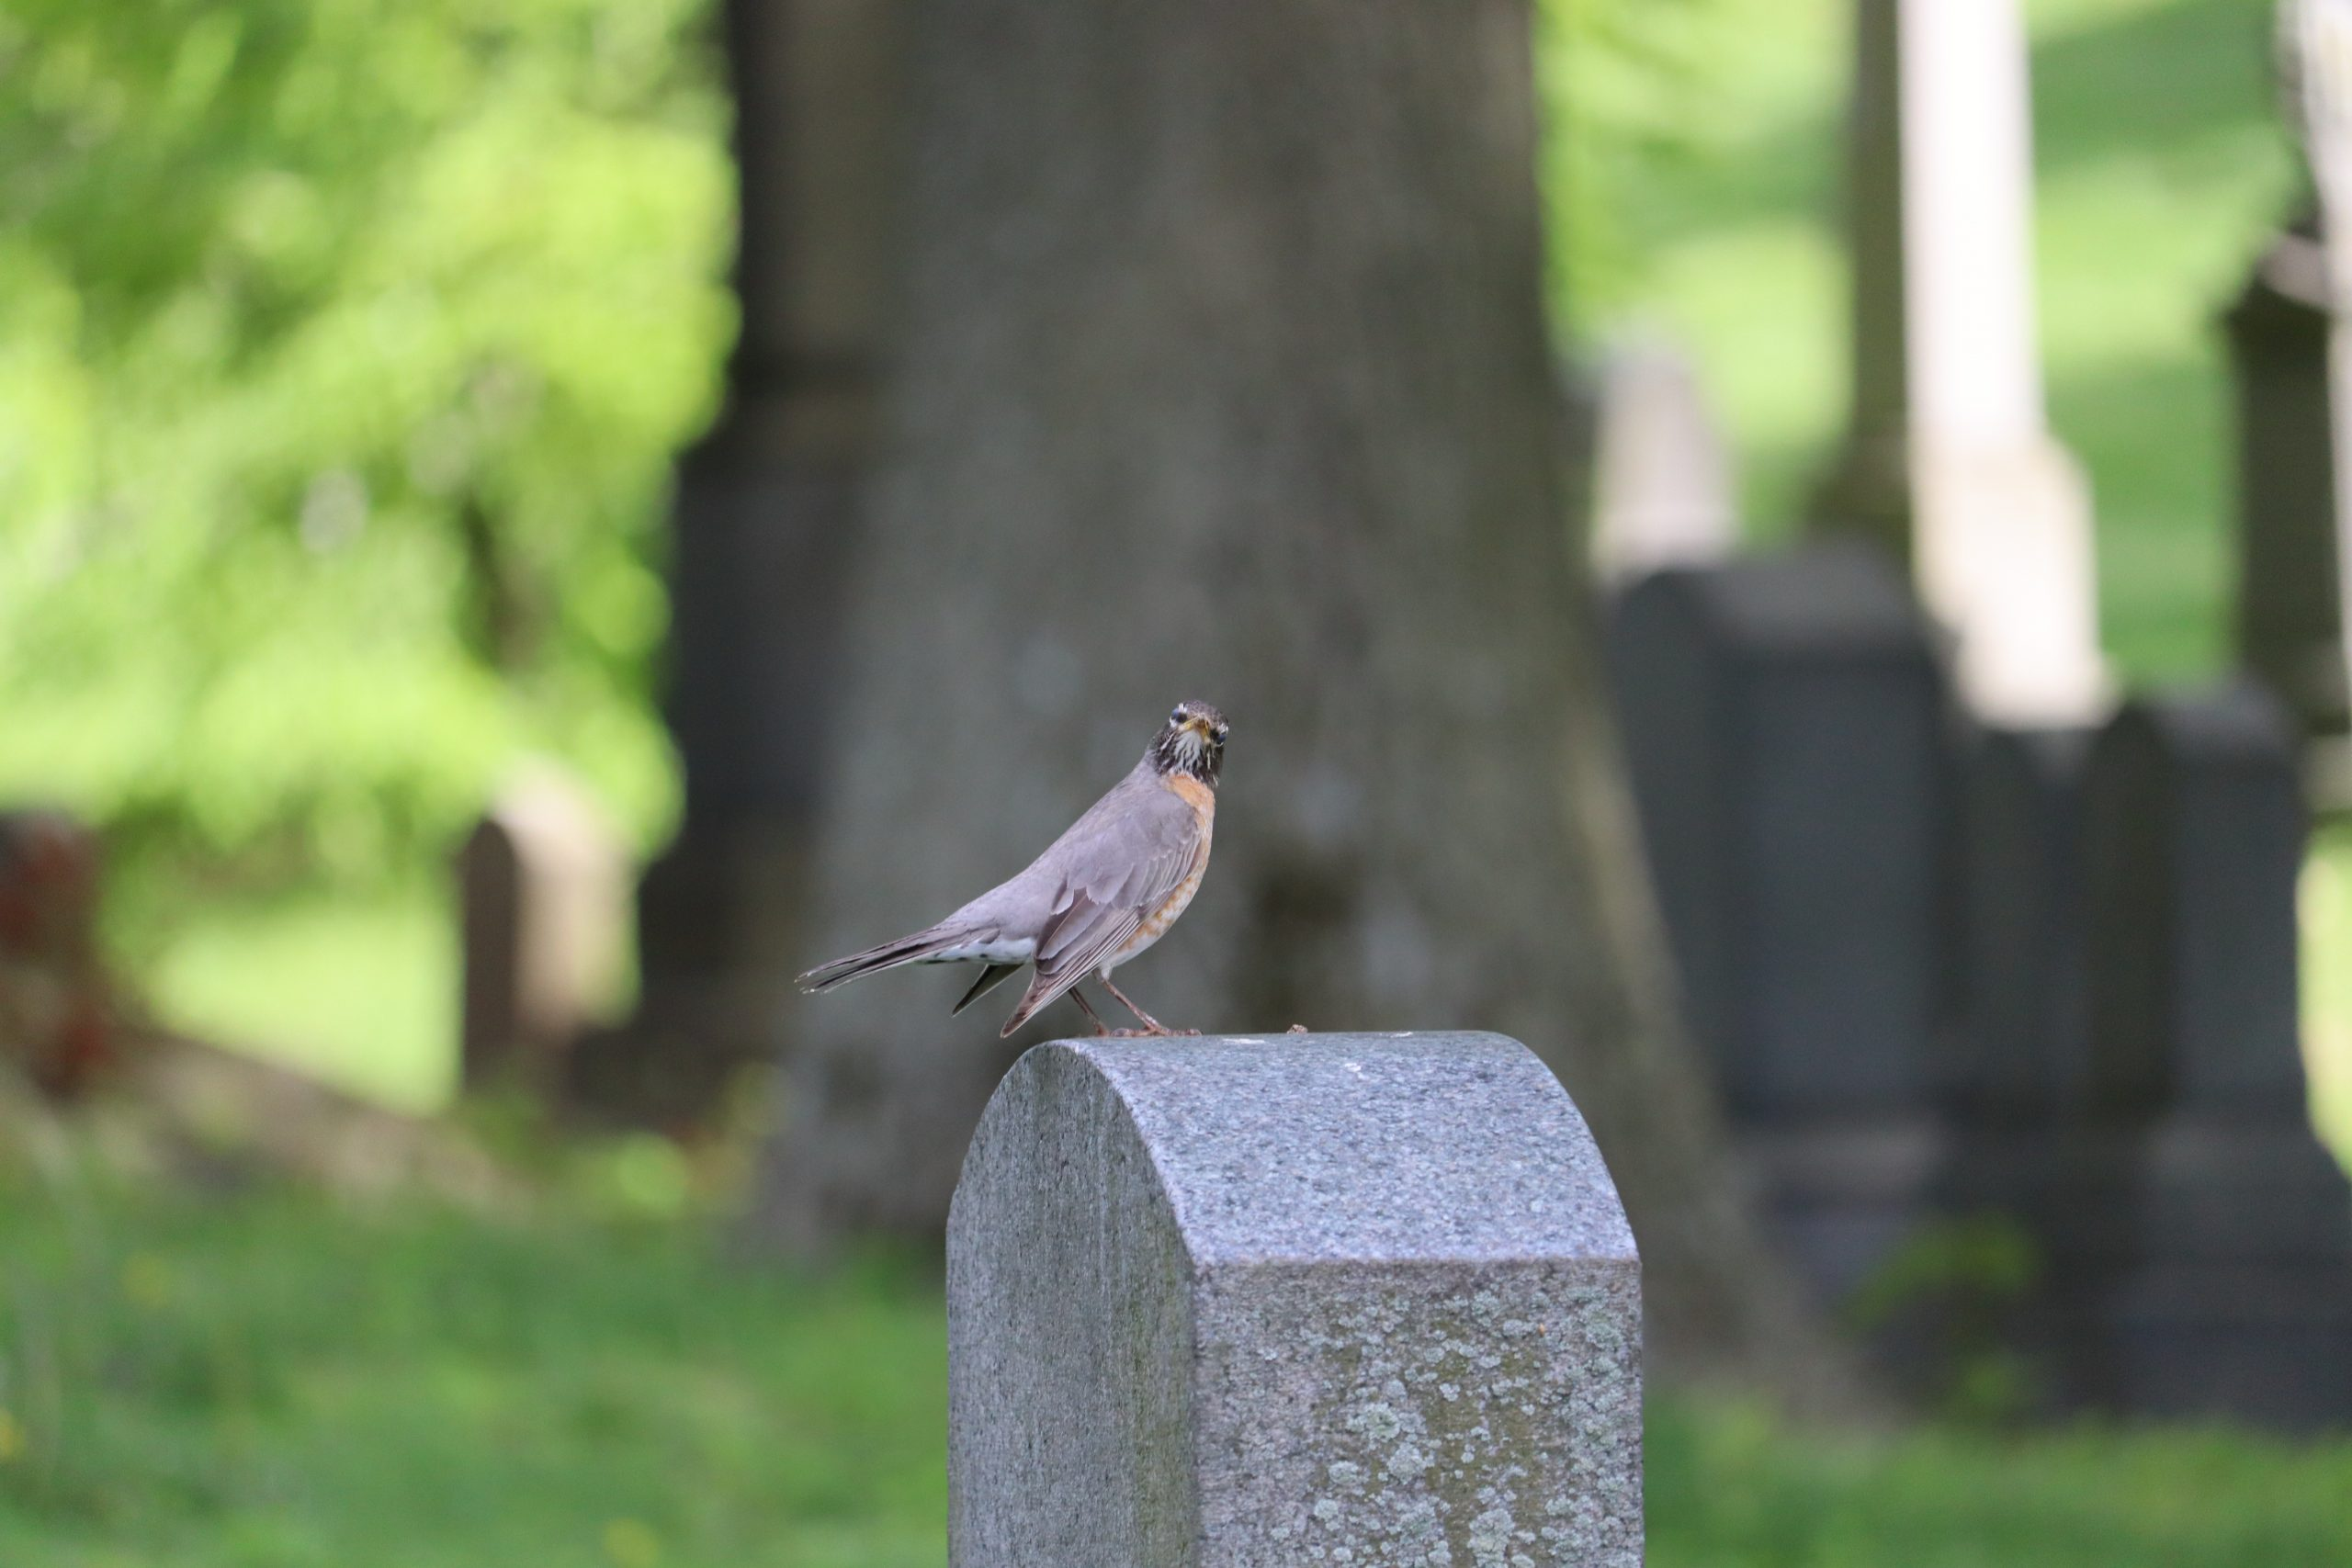 Caught again! After several shots, this American Robin atop a tombstone gave me a good once over.